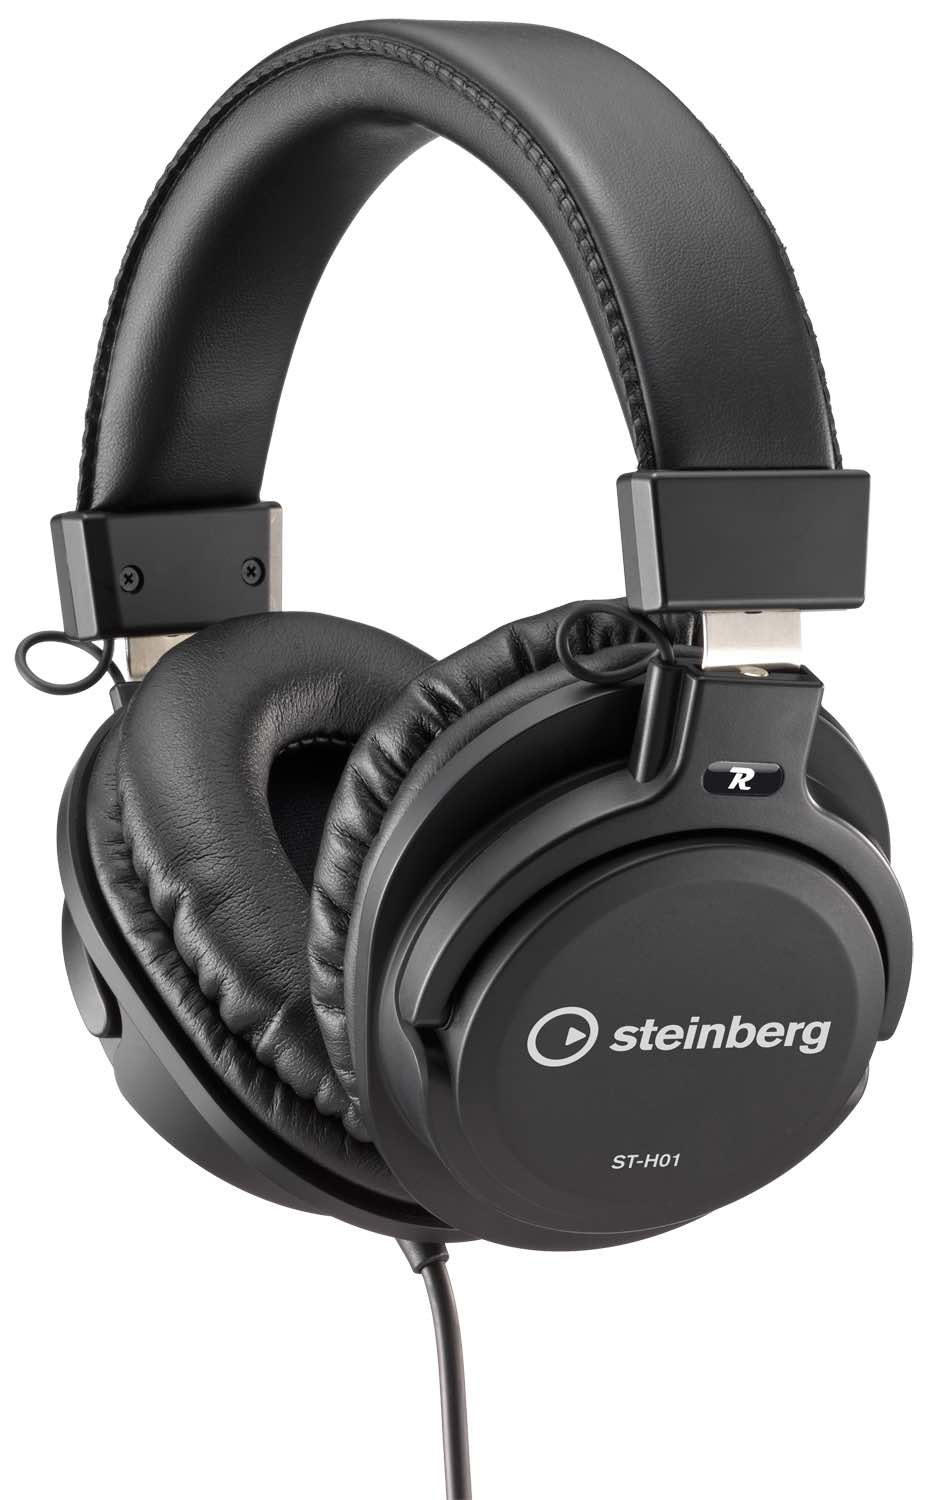 Steinberg ST-H01 cuffie headphones mix rec production music studio home strumenti musicali